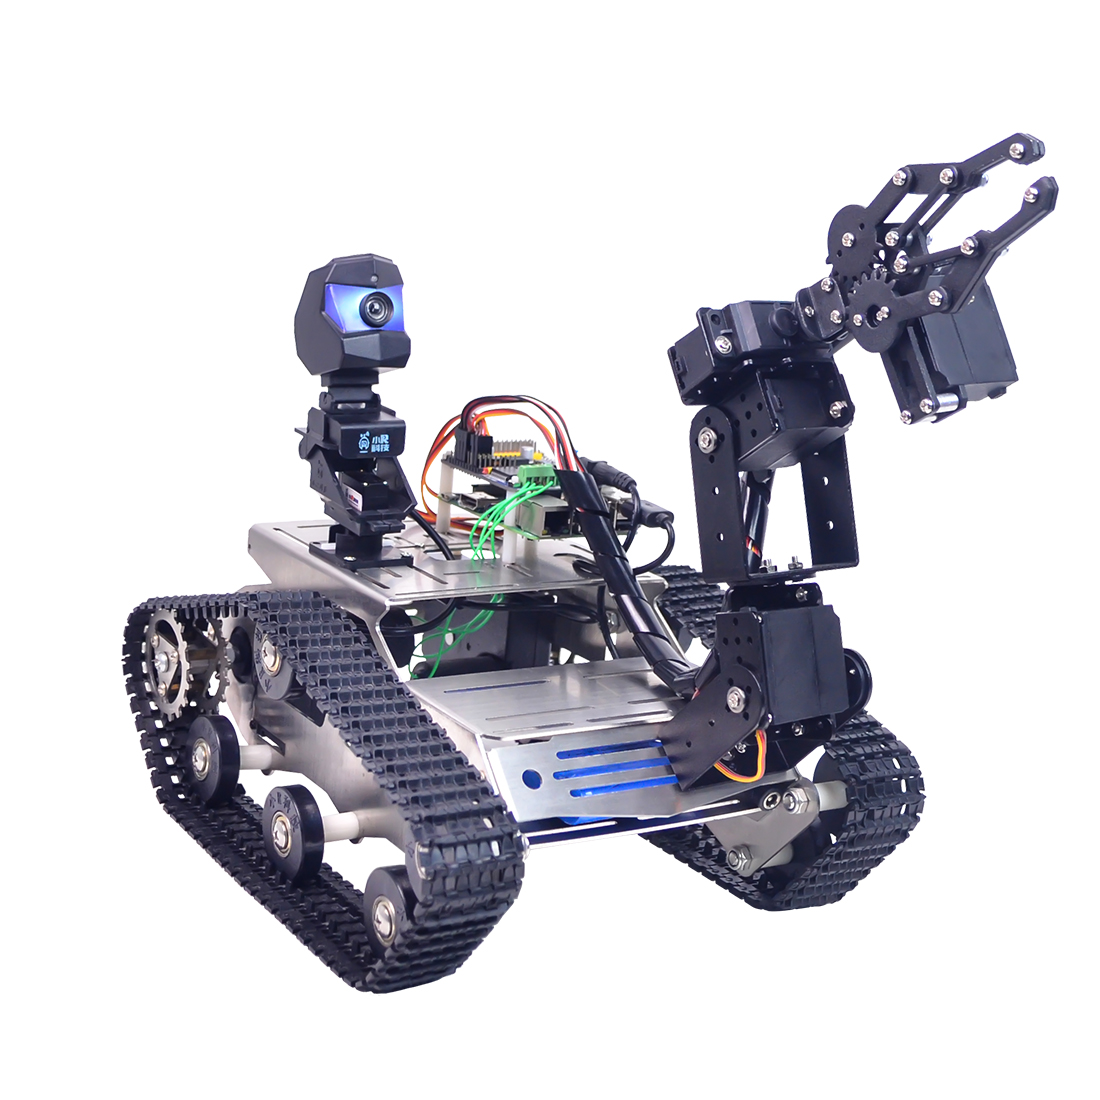 Programmable TH WiFi FPV Tank Robot Car Kit With Arm For Arduino MEGA For Children Toys - Standard Version Small Claw/Large Claw